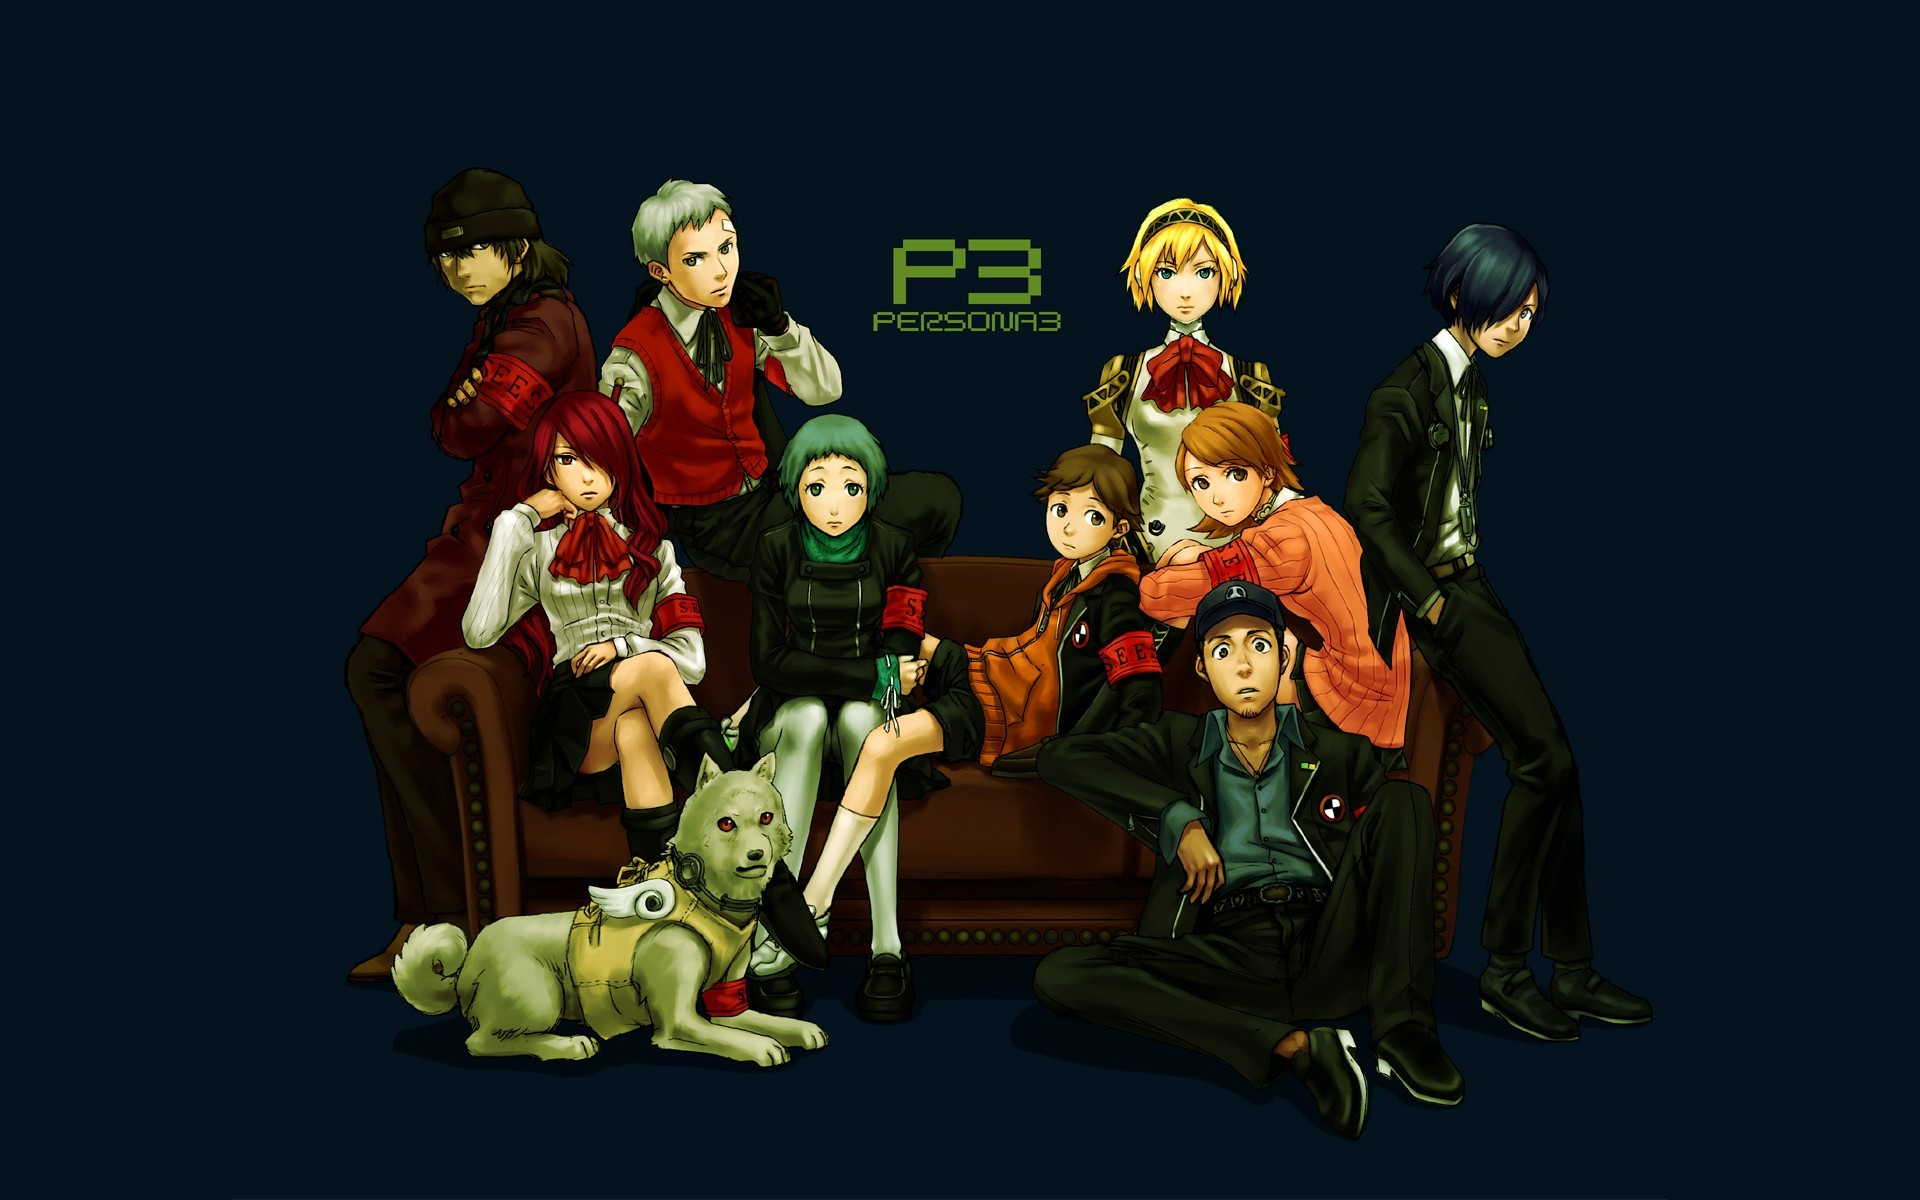 1920x1200 Widescreen Wallpapers: Persona 2 - HD Wallpapers